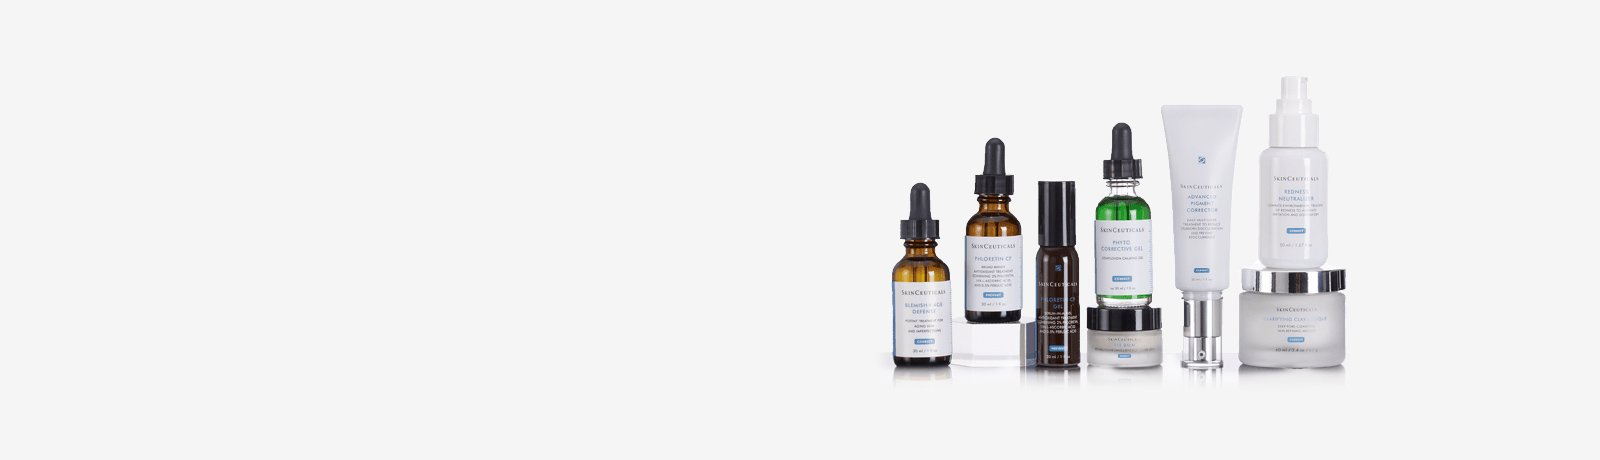 sunflower-dermatology-kansas-city-skinceuticals-advanced-clinical